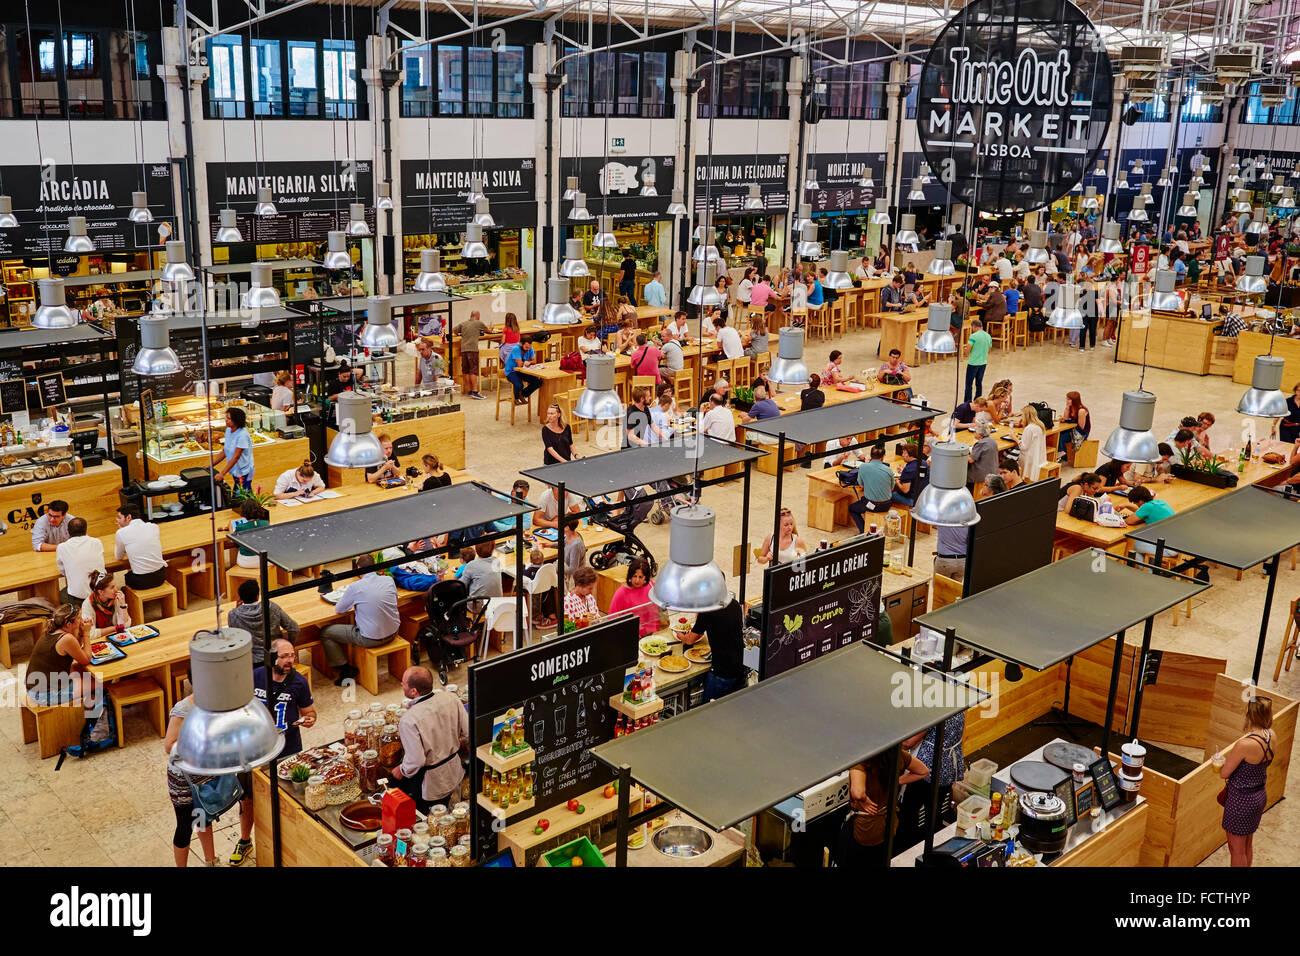 Mercado Da Ribeira Food Court